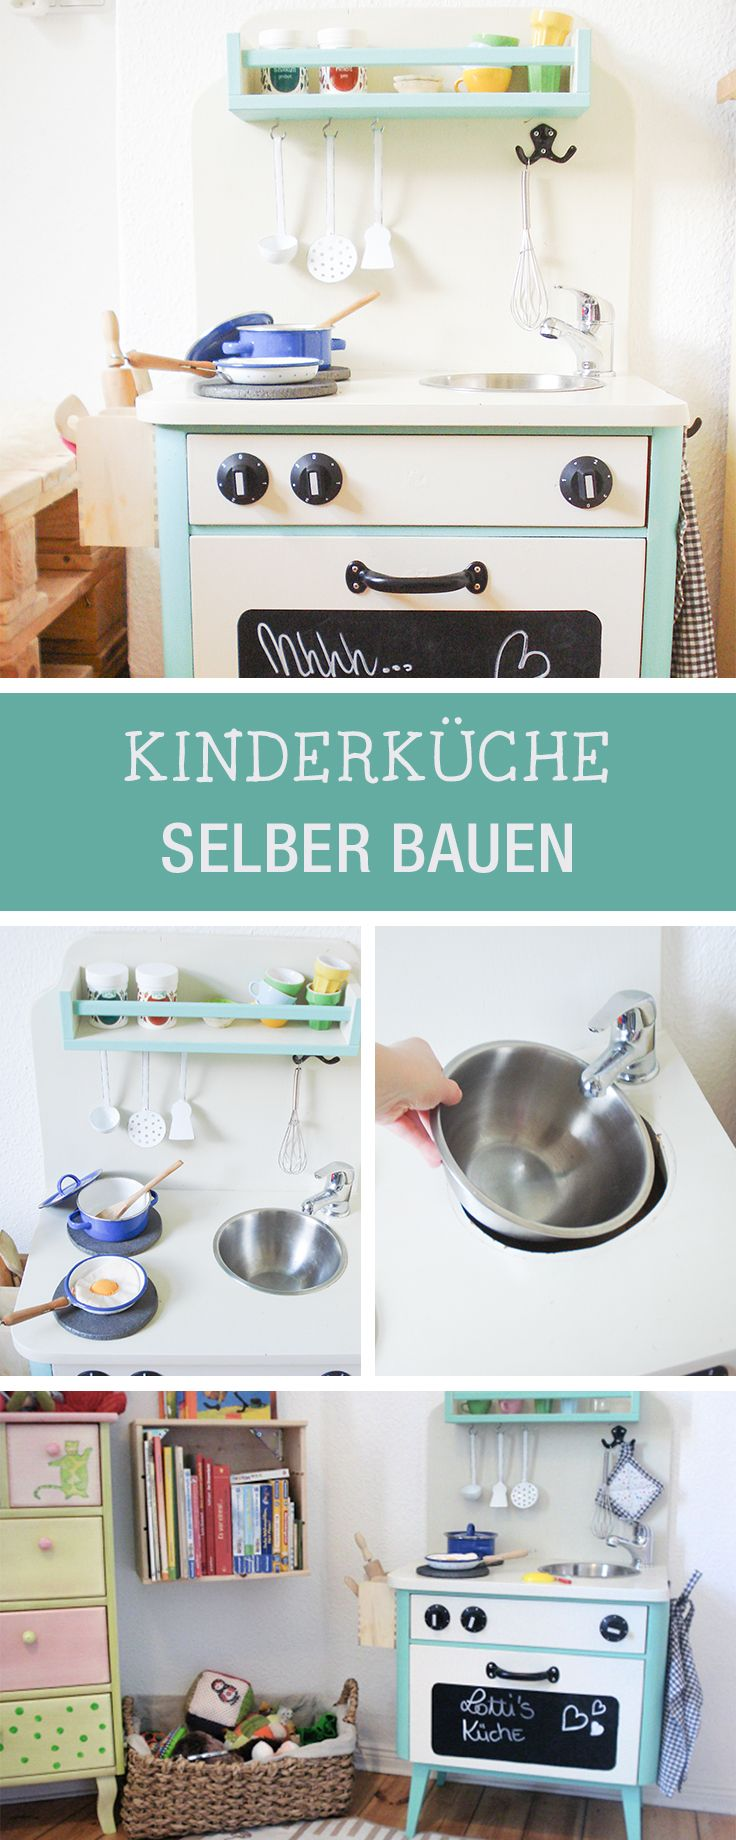 DIY fürs Kinderzimmer: Kinderküche selberbauen, Kinderzimmer Deko / diy furniture for the nursery: play kitchen for kids via DaWanda.com